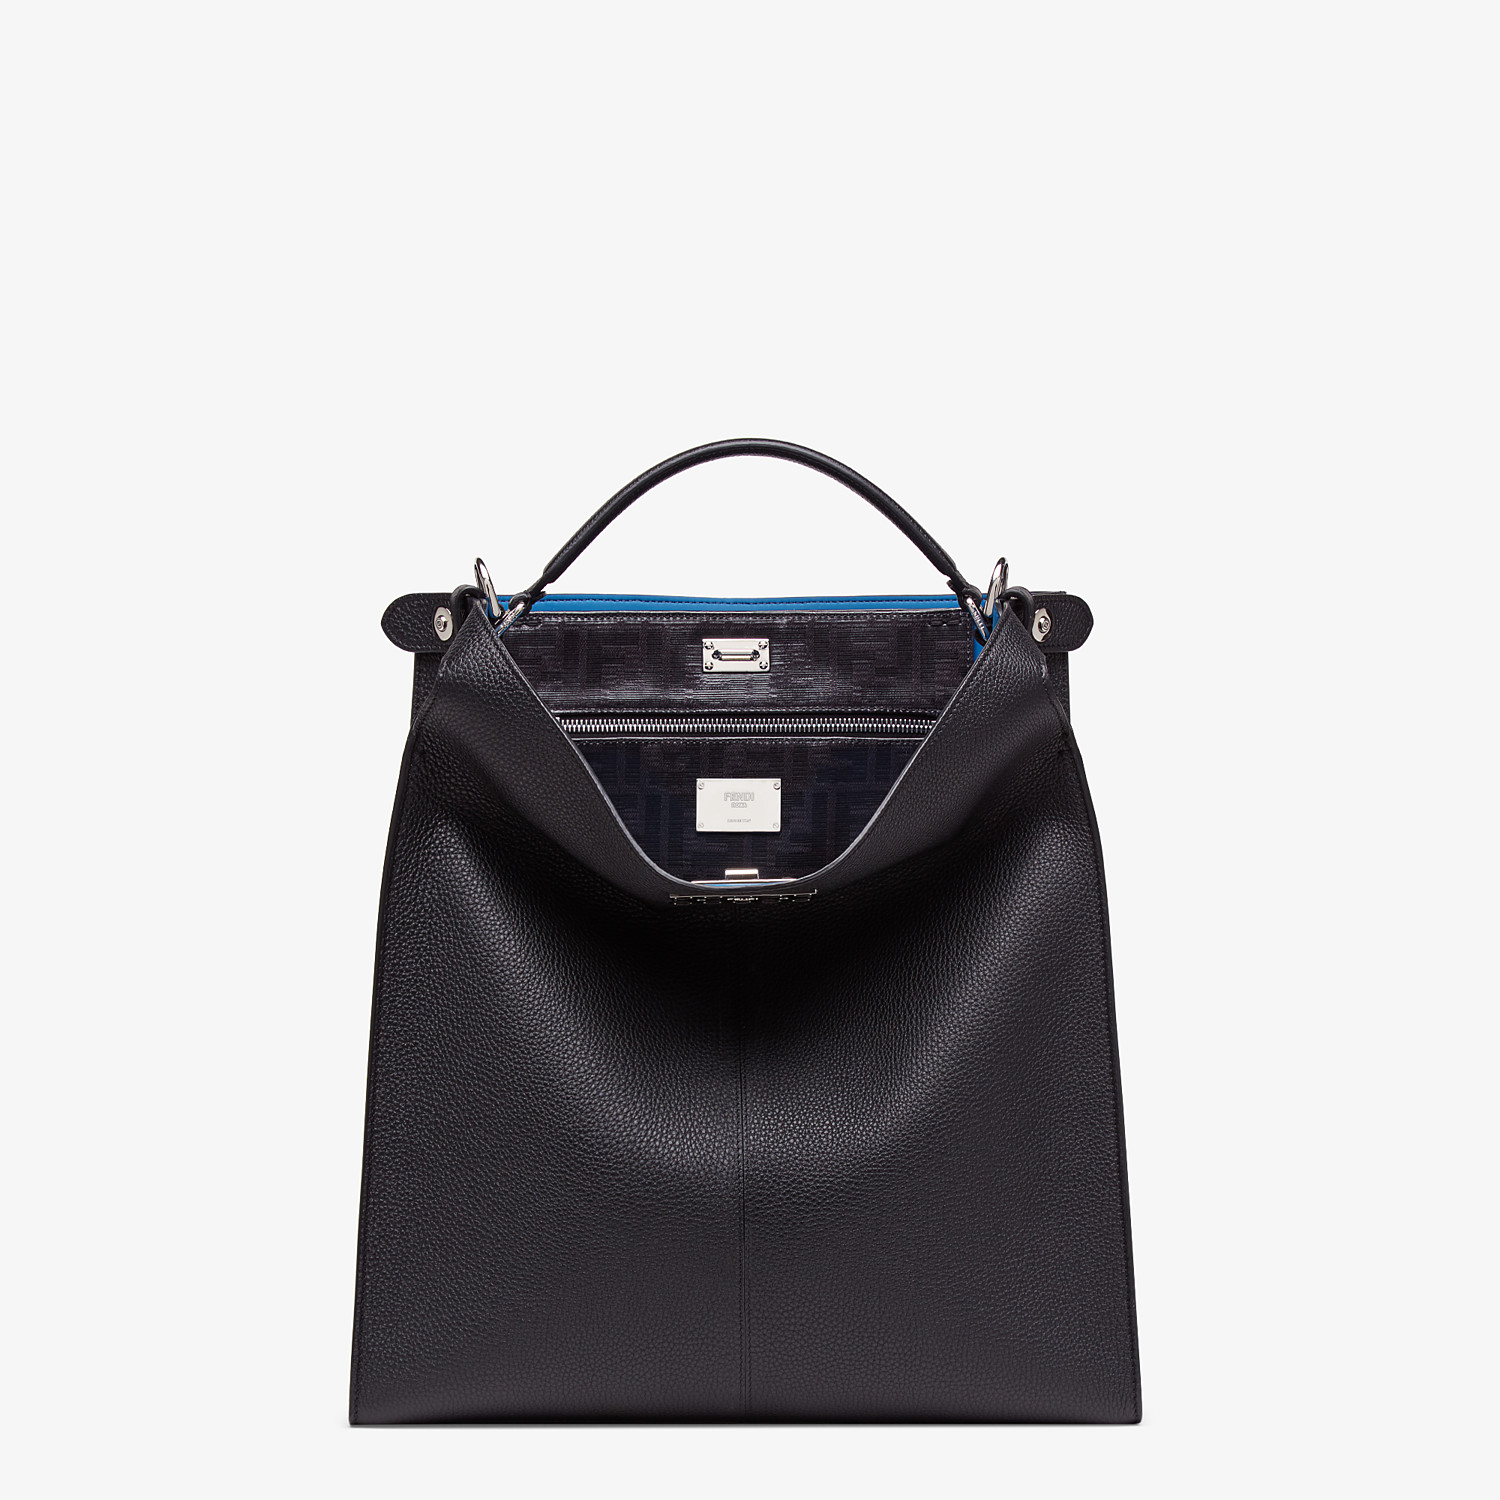 FENDI PEEKABOO X-LITE FIT - Black, calf leather bag - view 2 detail